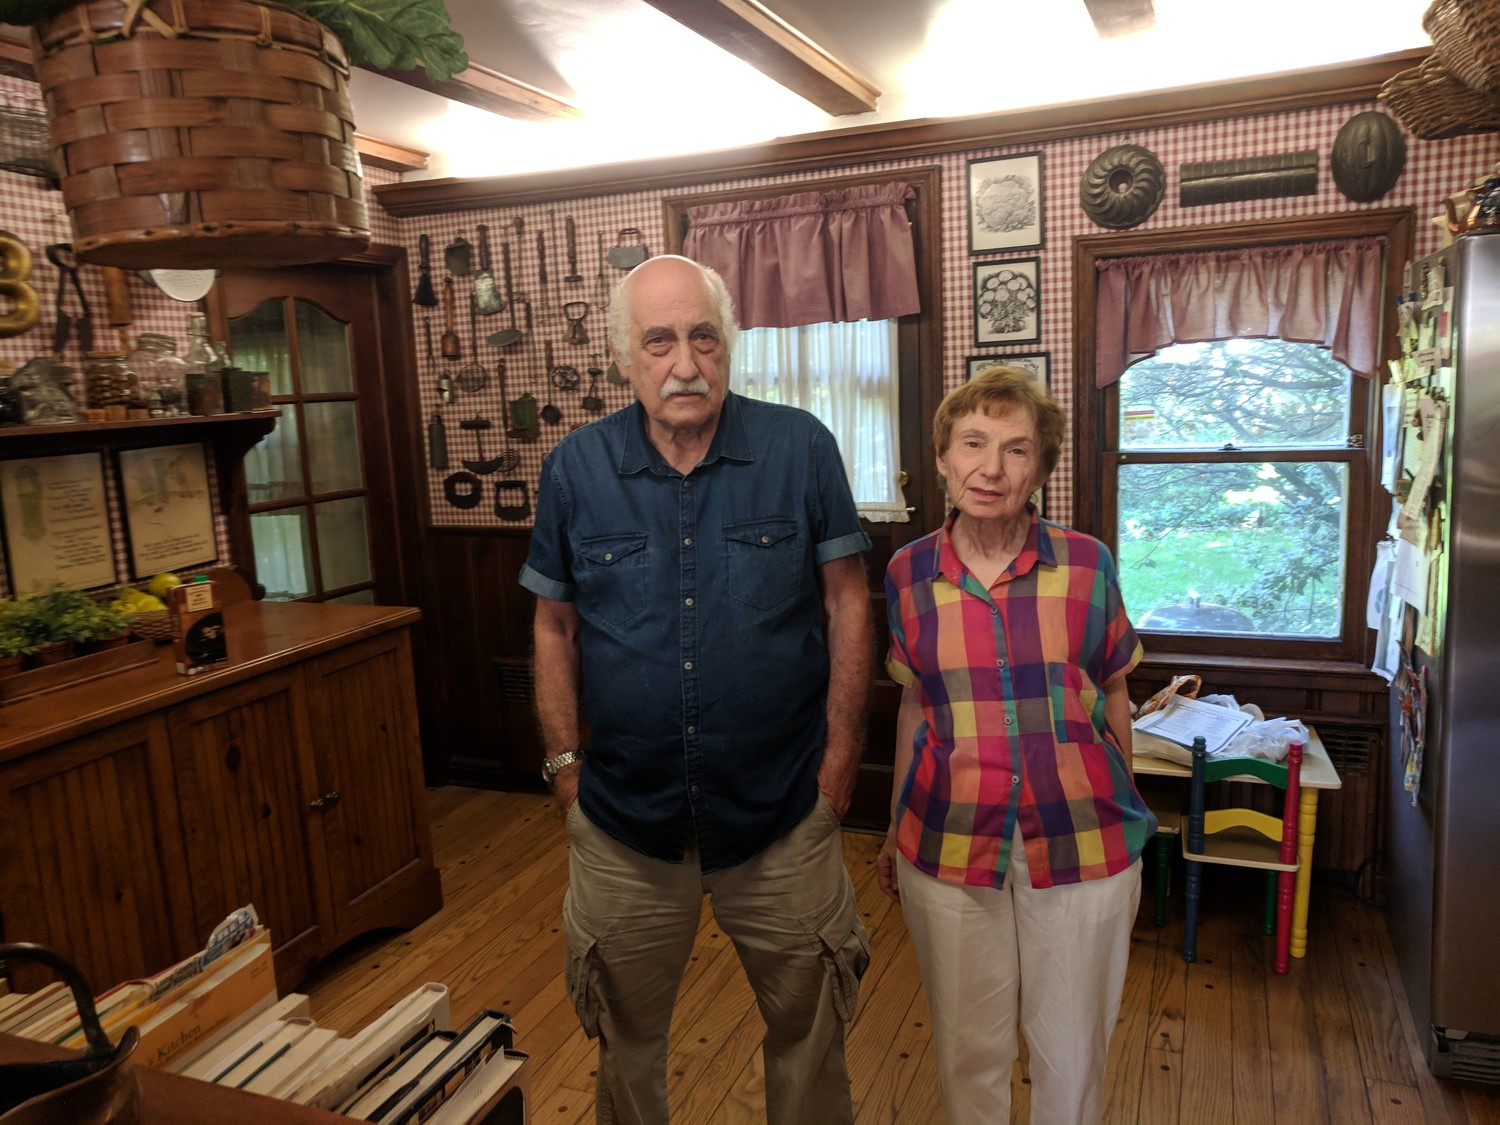 Gloria and Steve Bryan are seeking to have their home designated a historic landmark. Despite new floors, the interior gives off an old-time vibe.